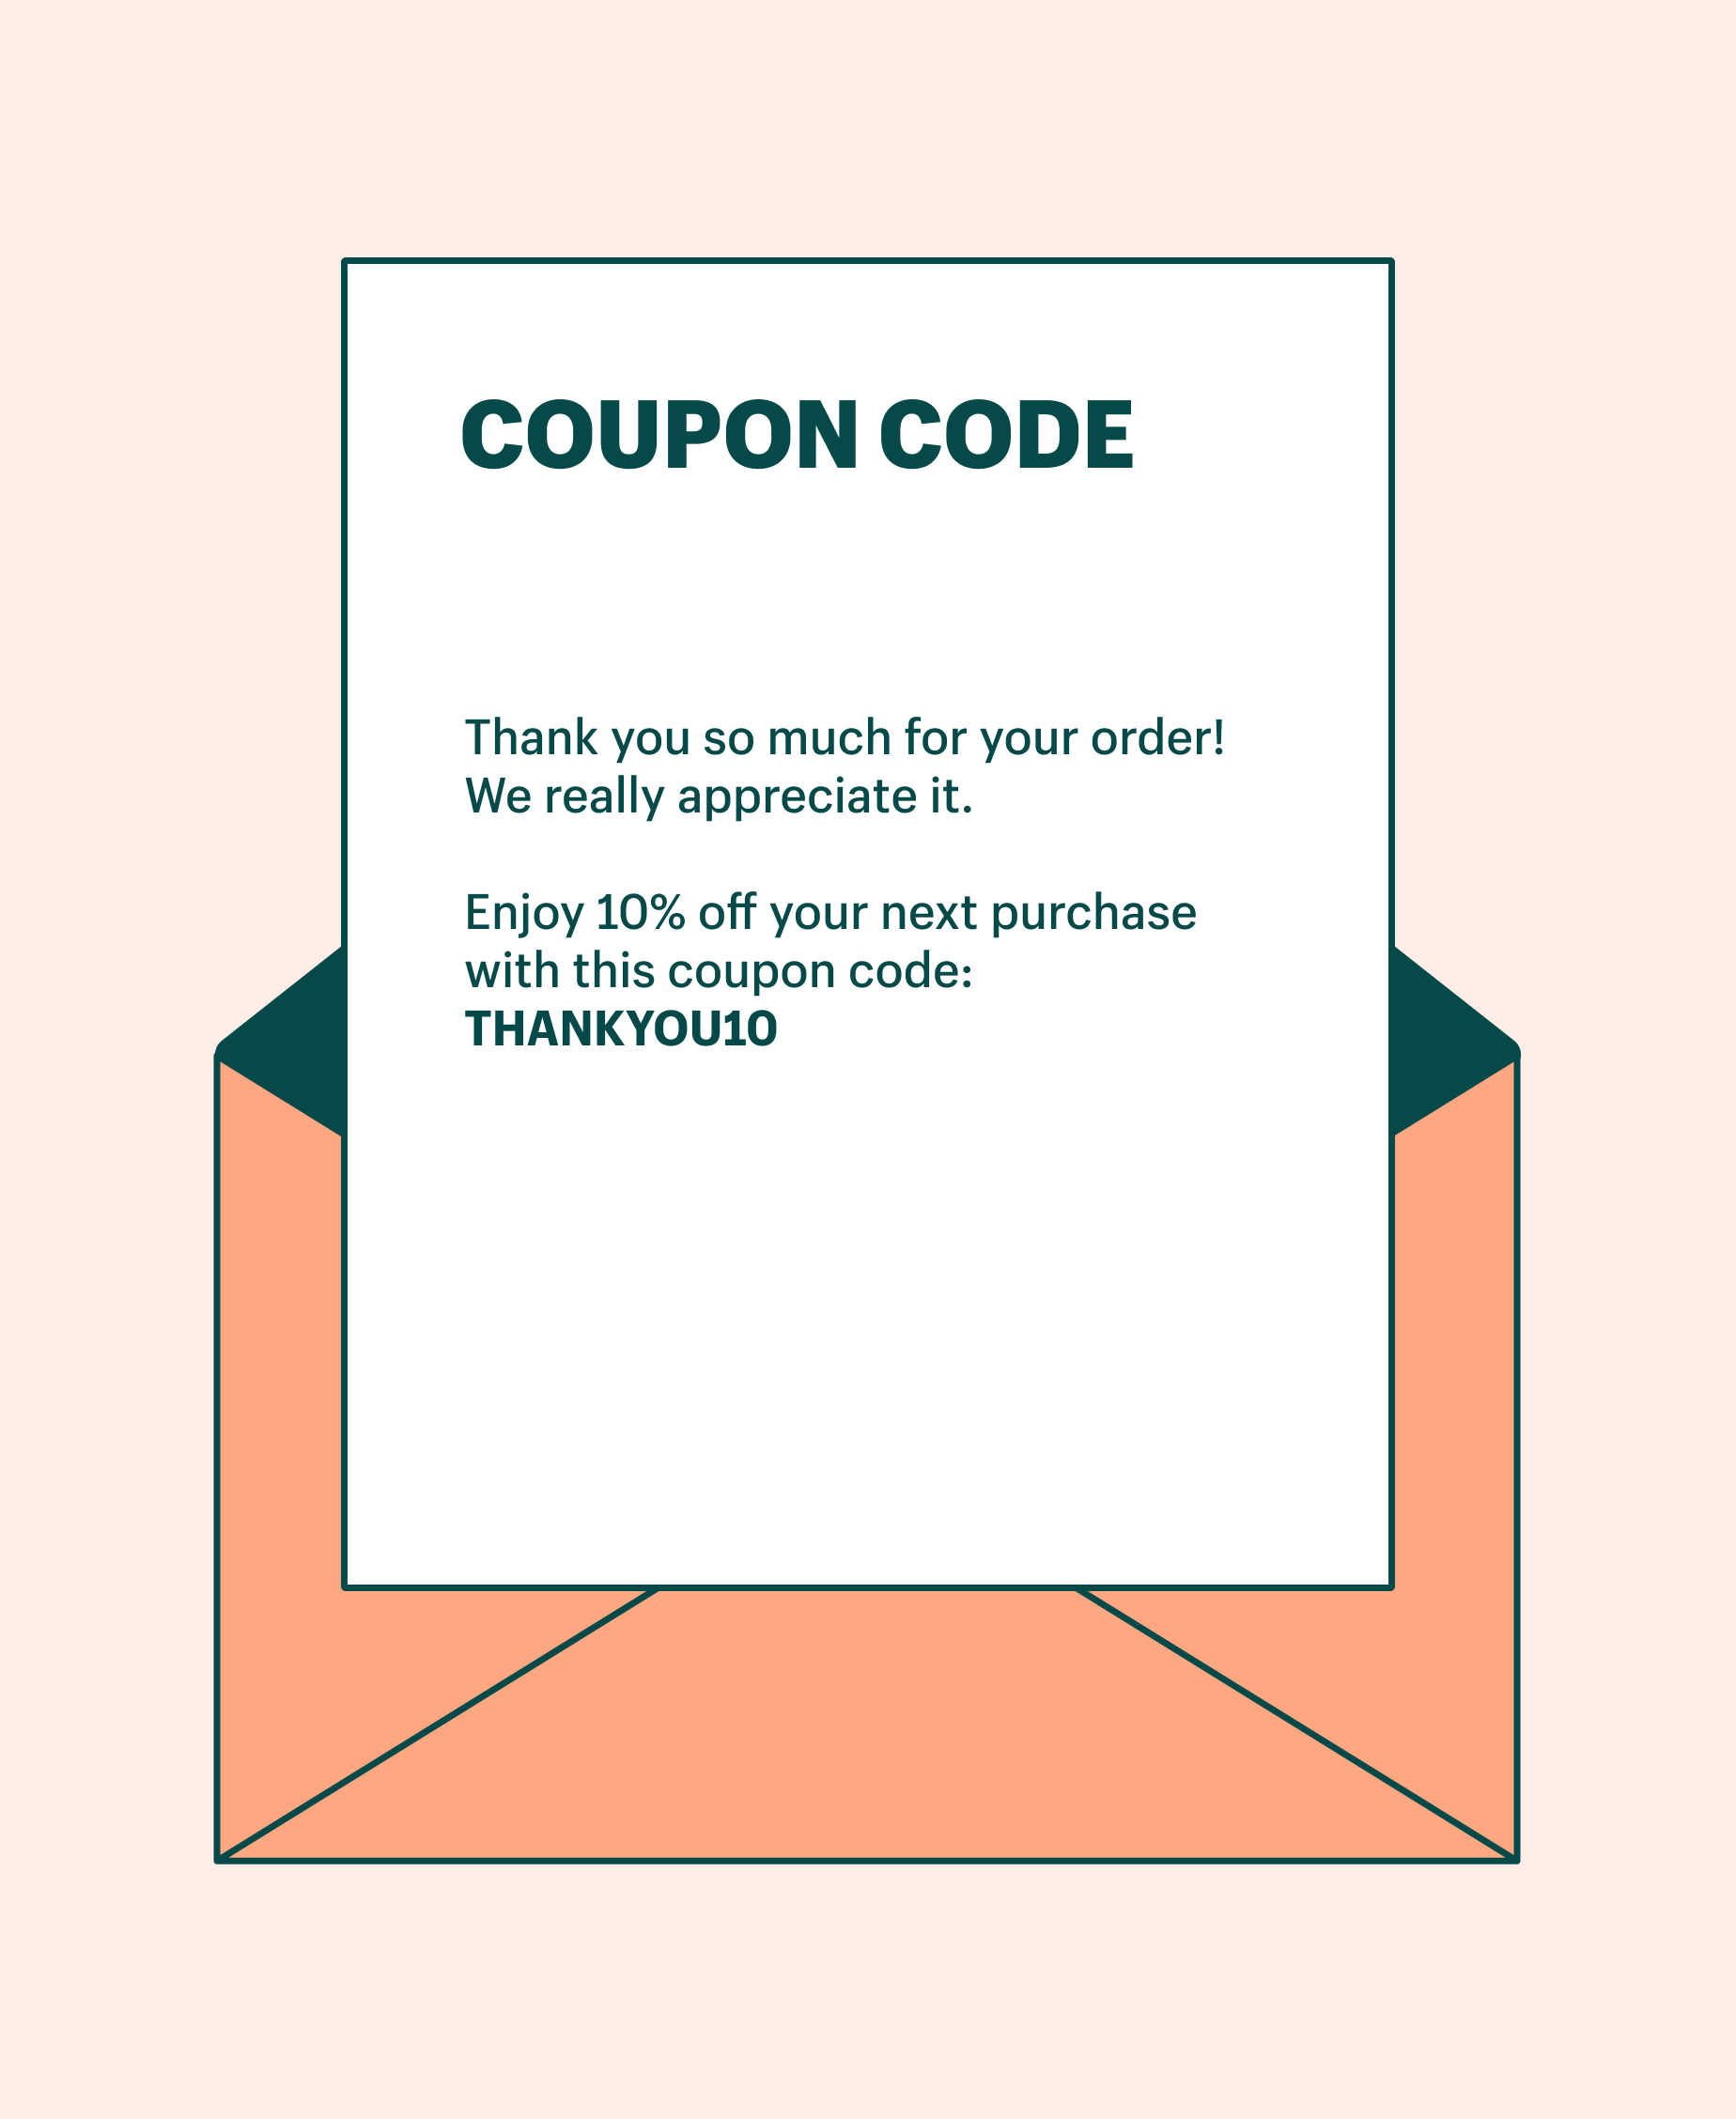 Graphic of a thank you for your purchase note to a customer with a coupon code